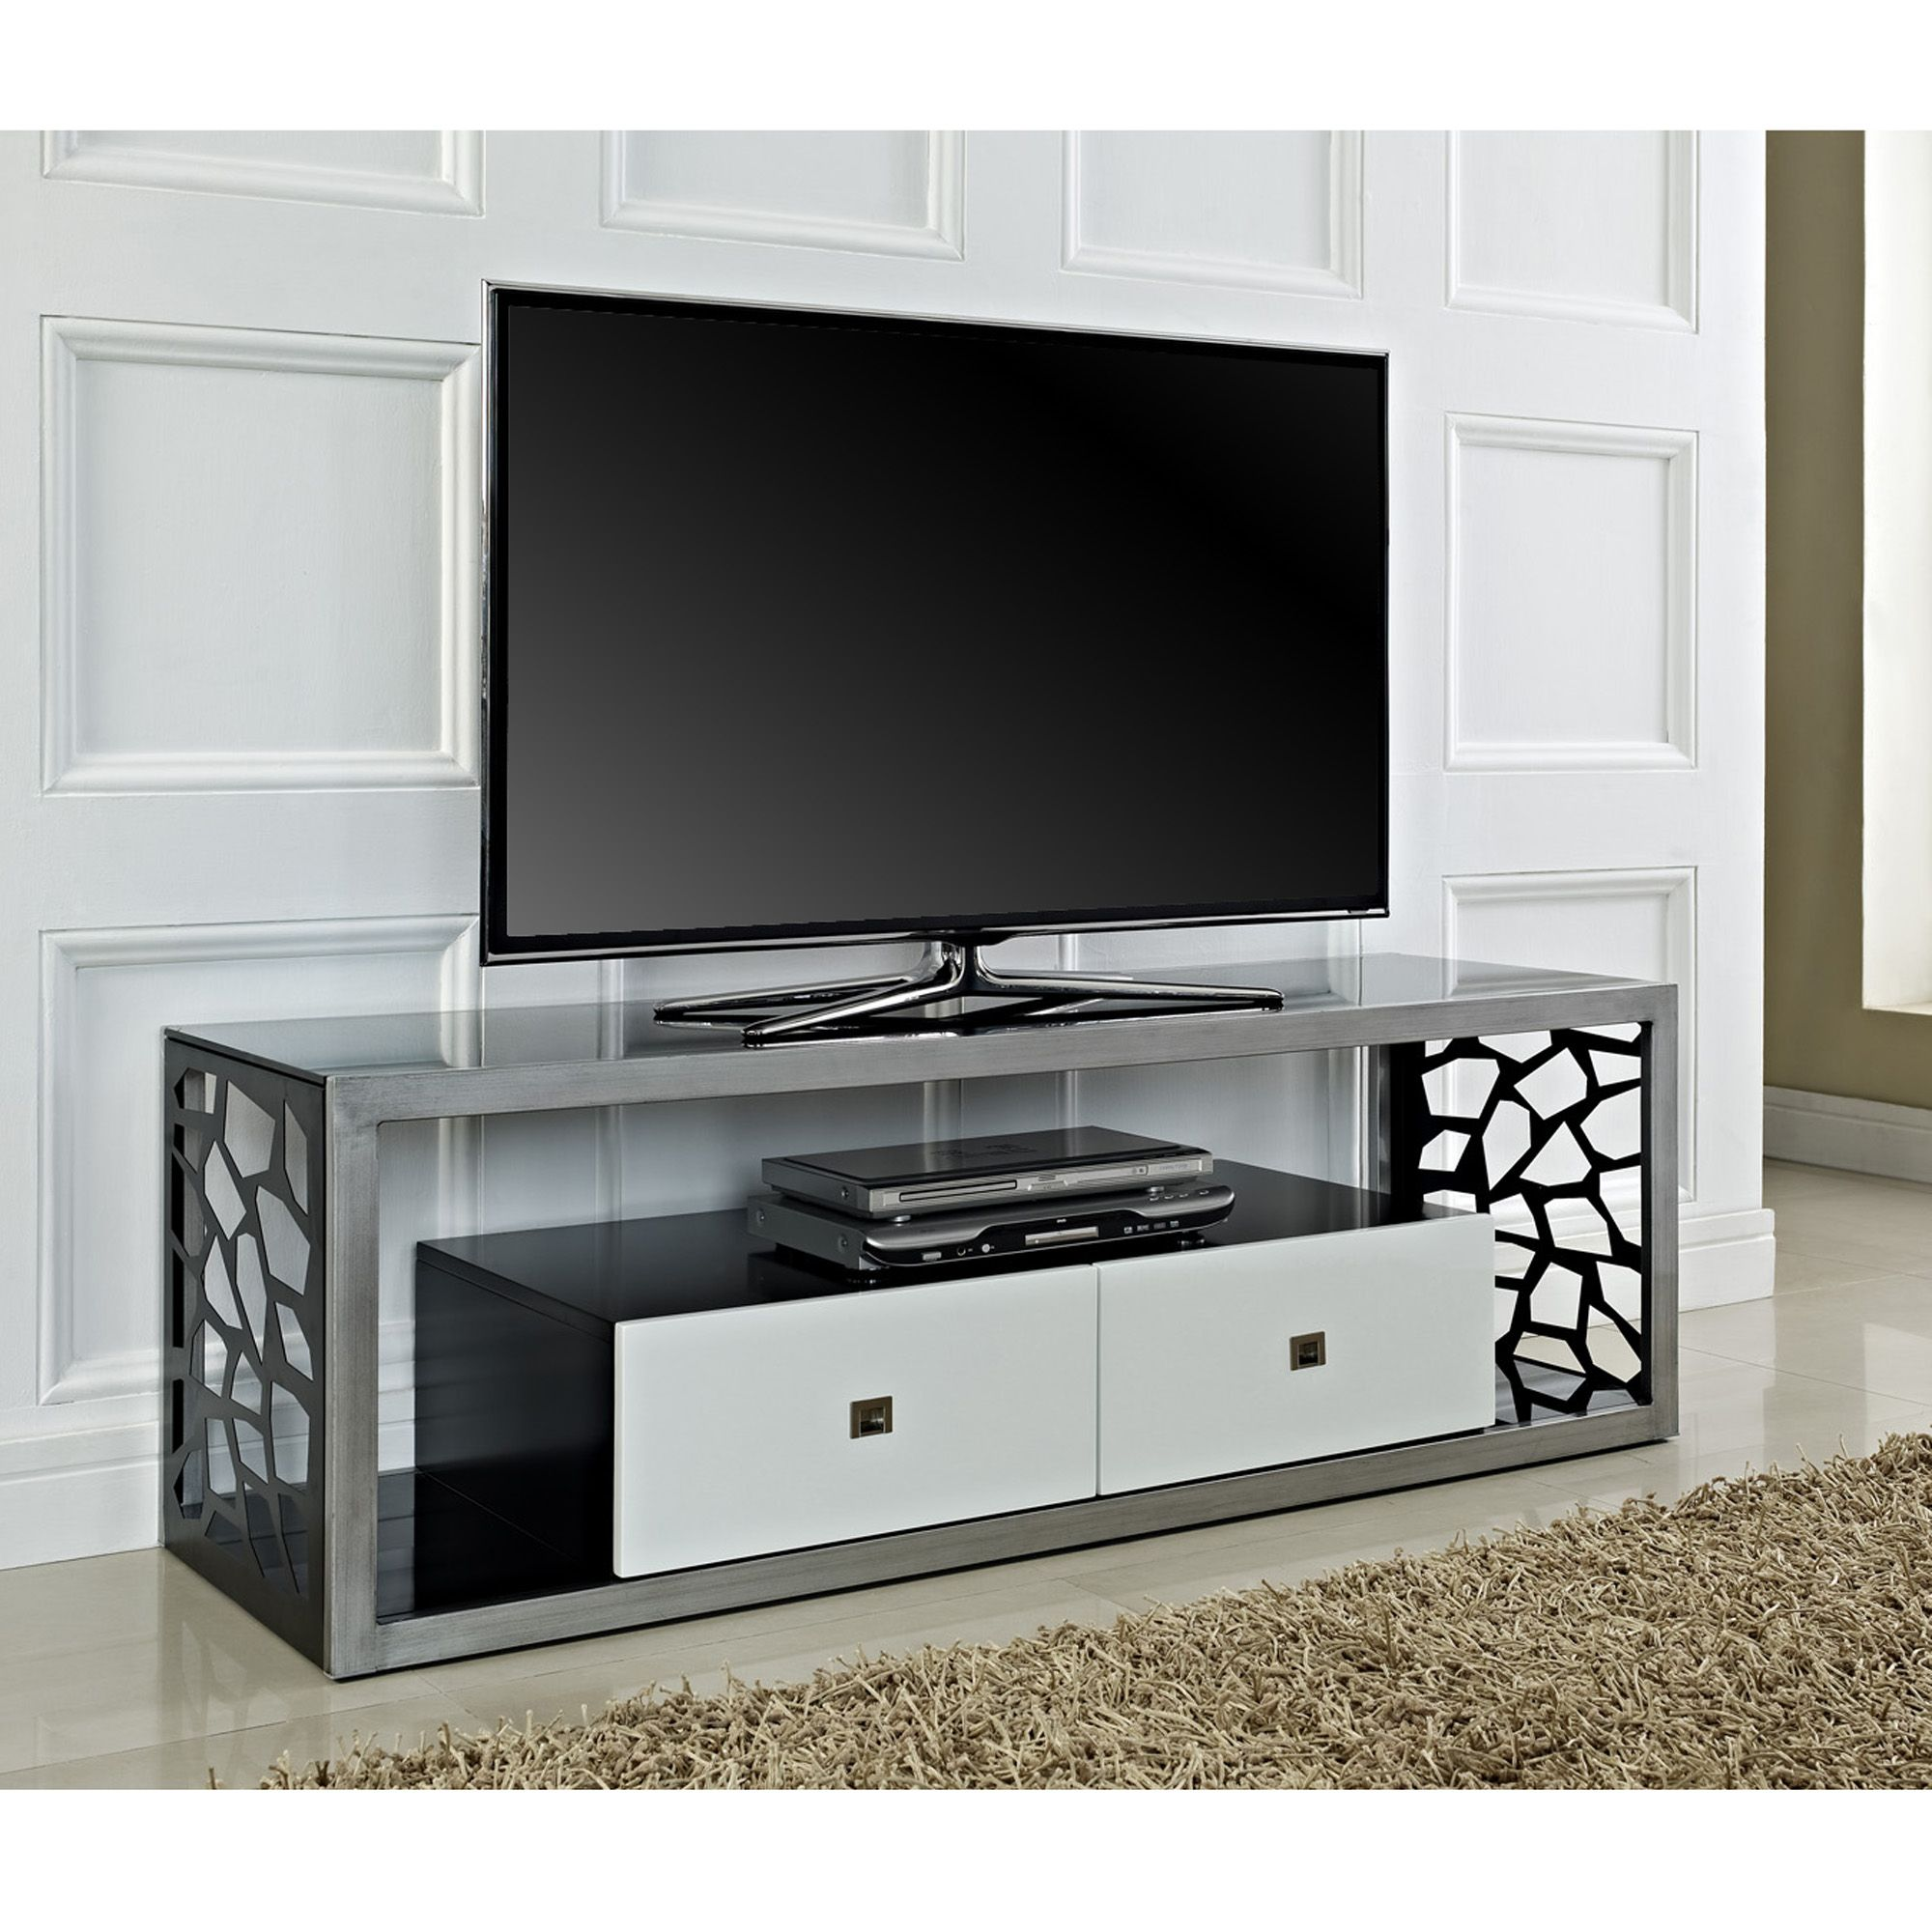 Beautiful 60 Mosaic Tv Stand Brushed Silver Frame With White Drawers And Black Tempered Gl Stylish Sy